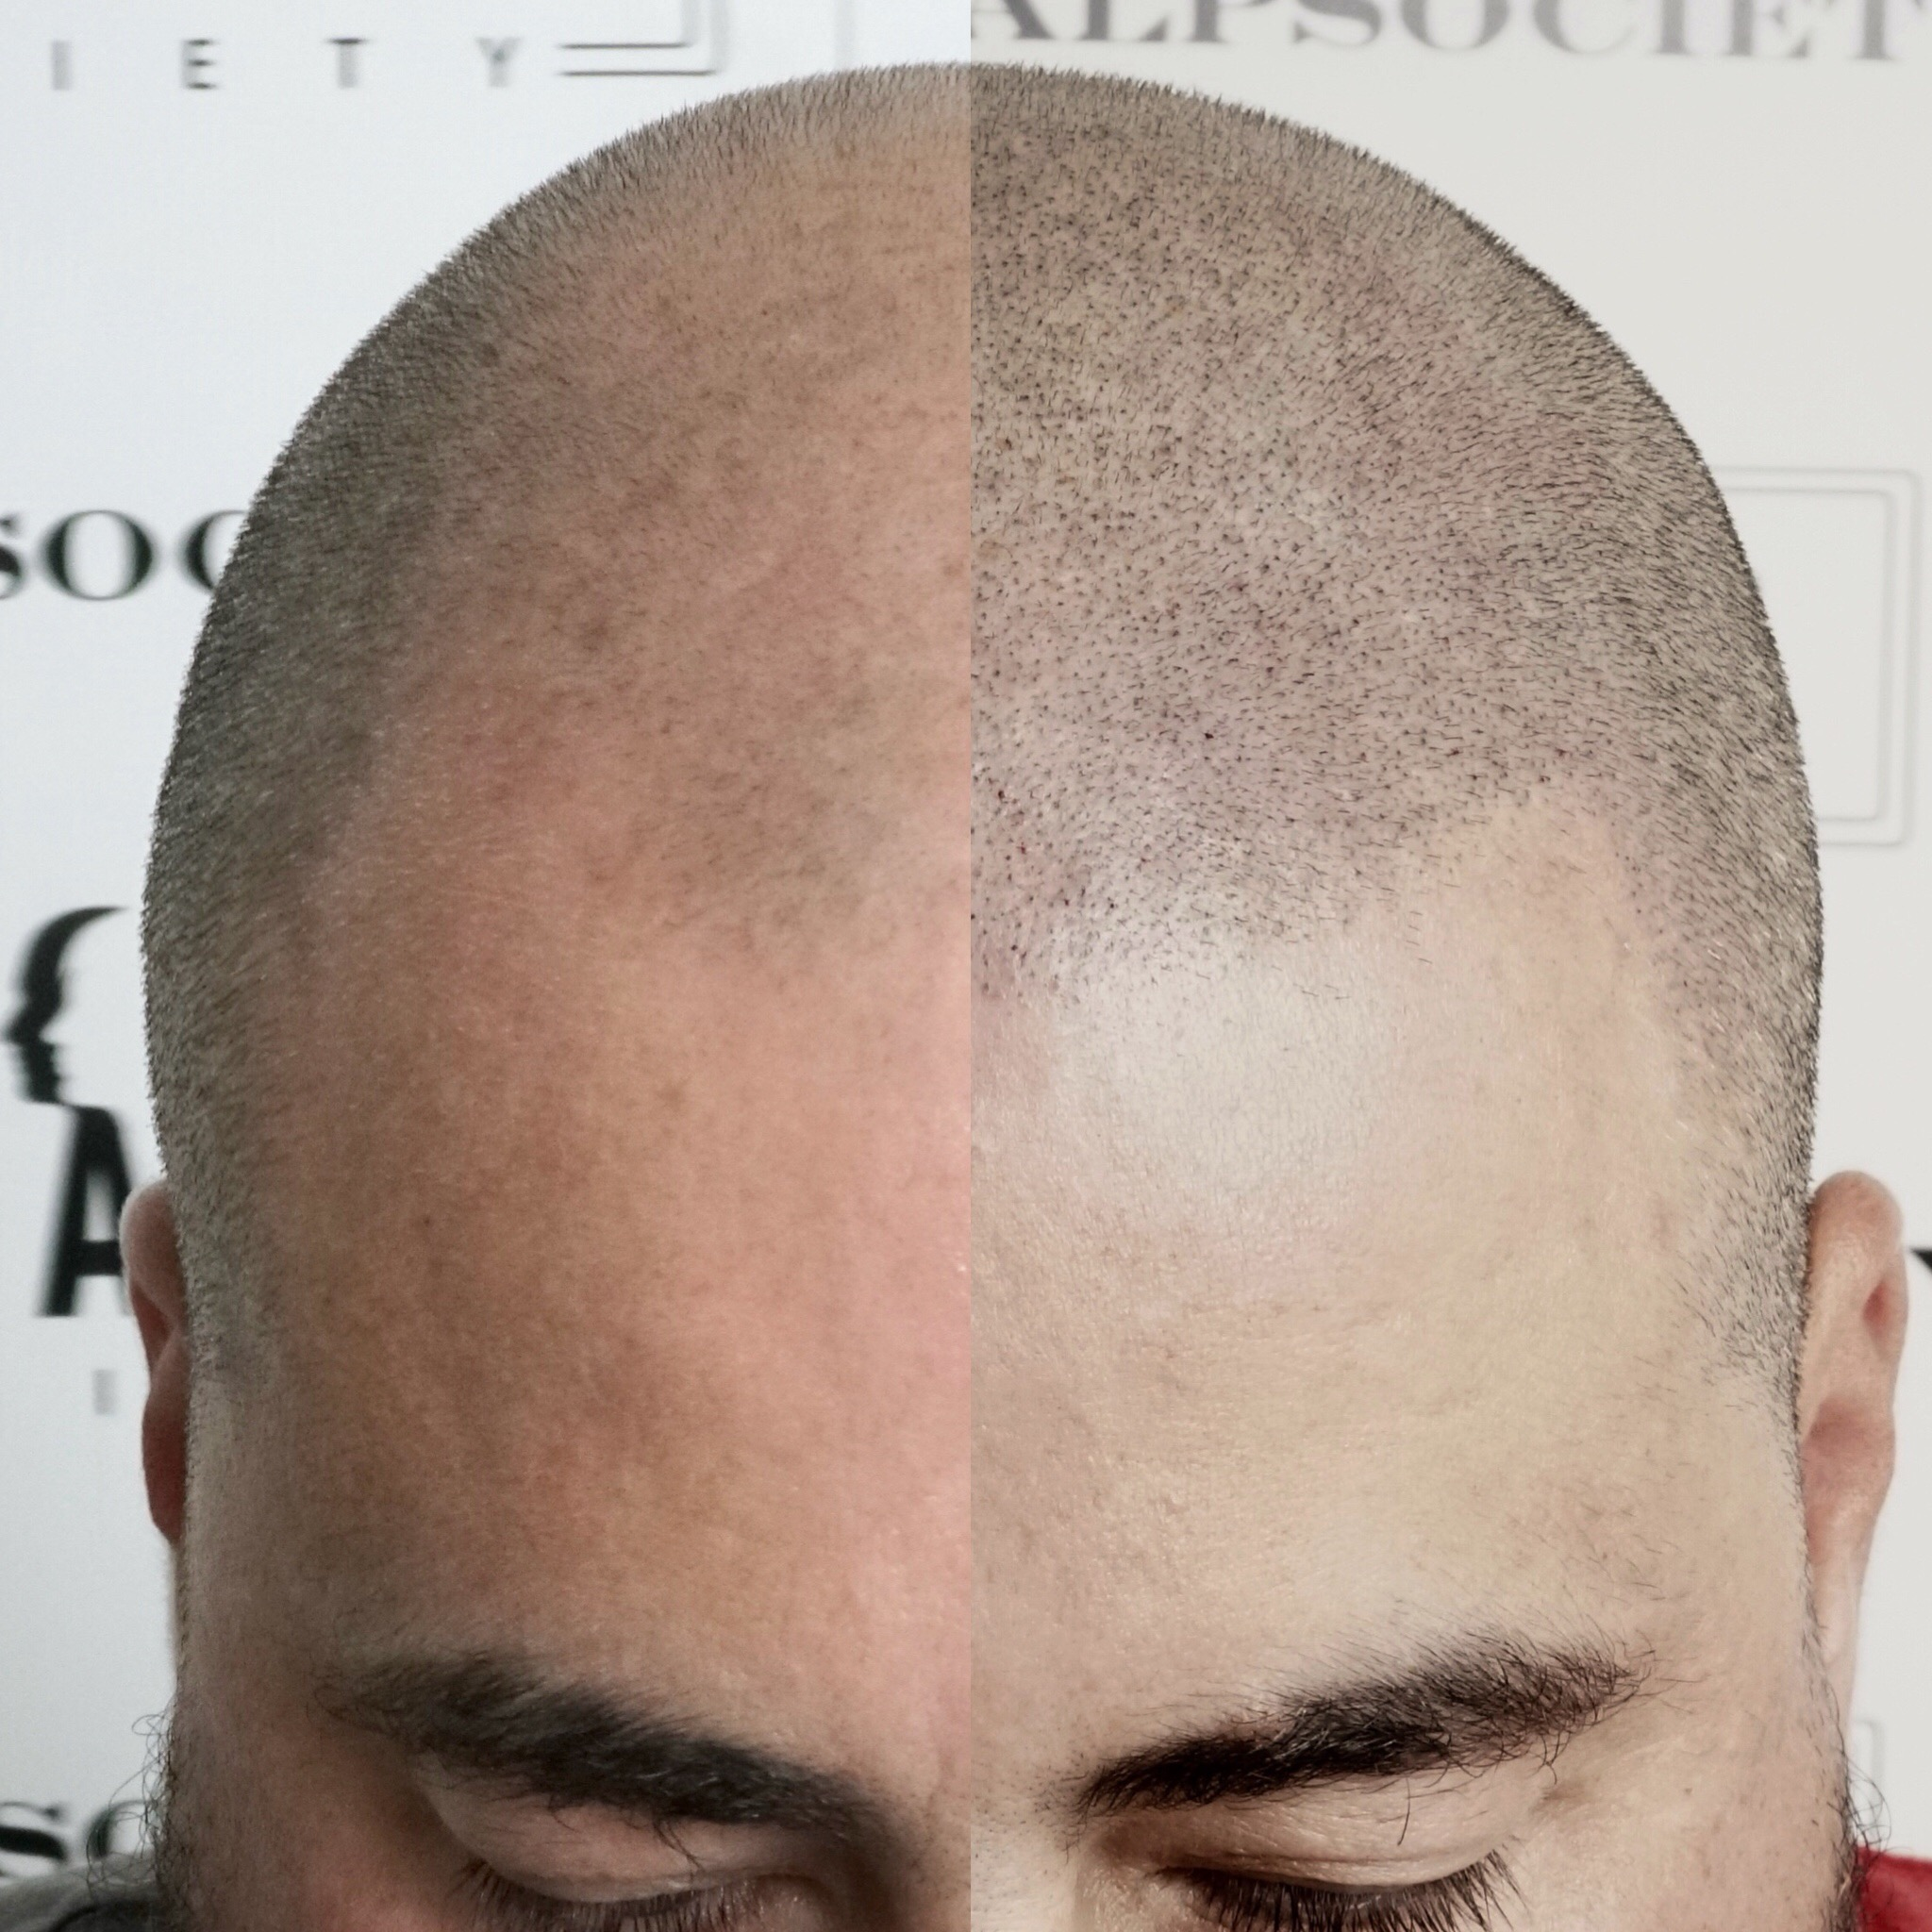 Male 28. Thinning and balding.Norwood 6-7, scalp micropigmentation performed and restructure hairline. He came in asking for a hair tattoo, another word for micropigmentation. Natural hair line per clients request.